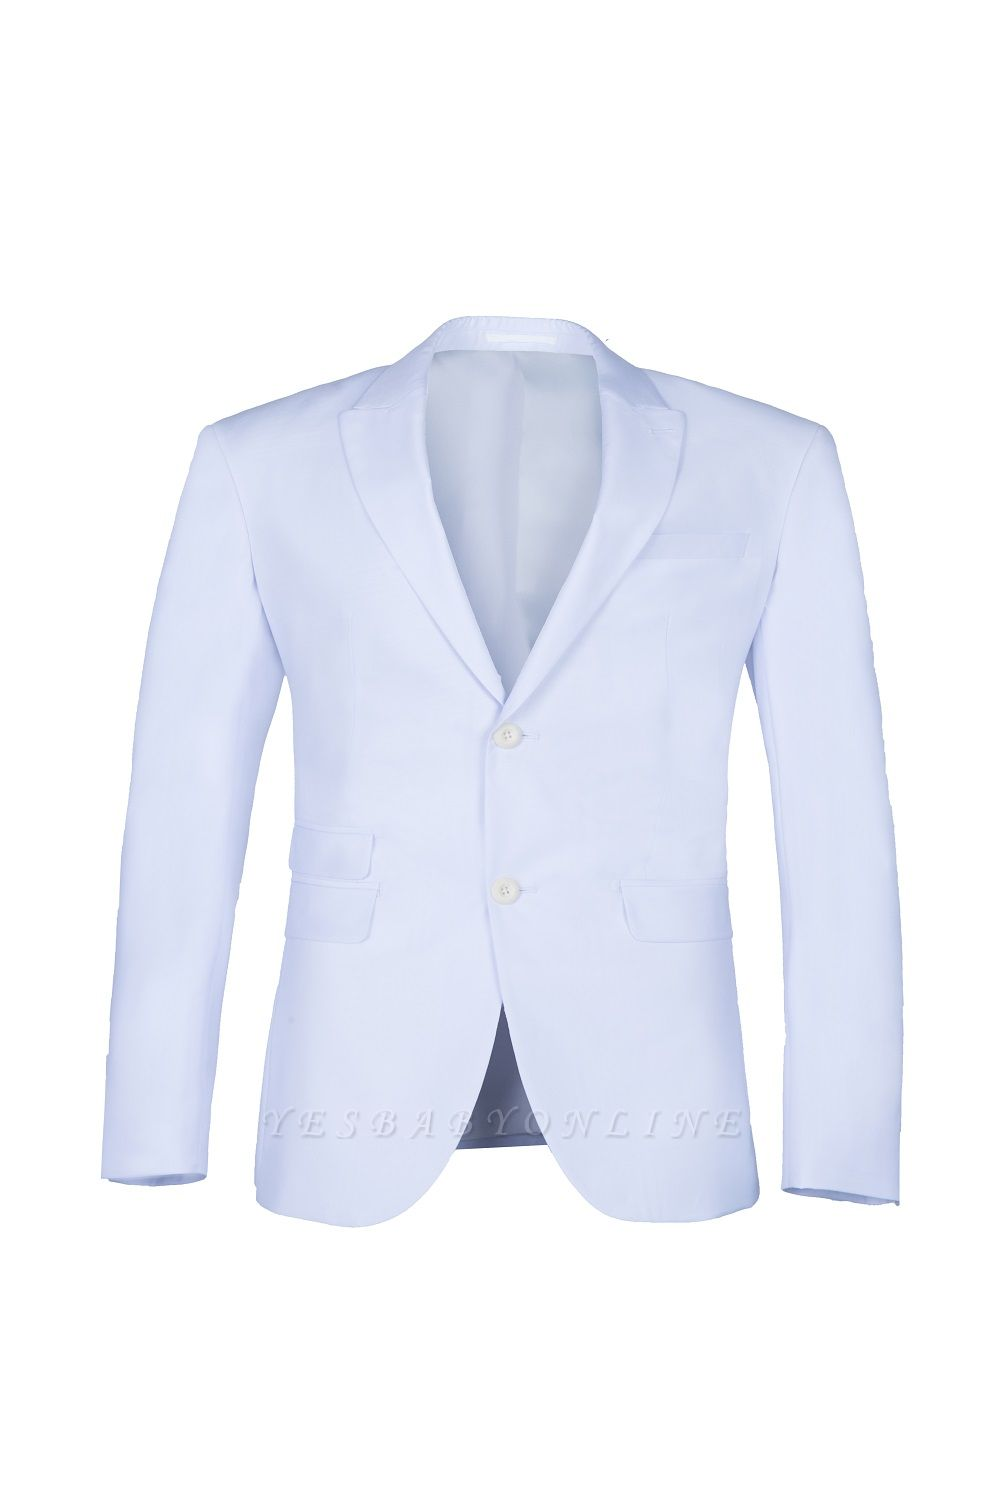 Wedding Prom Suits White Peak Lapel Two Button Single Breasted